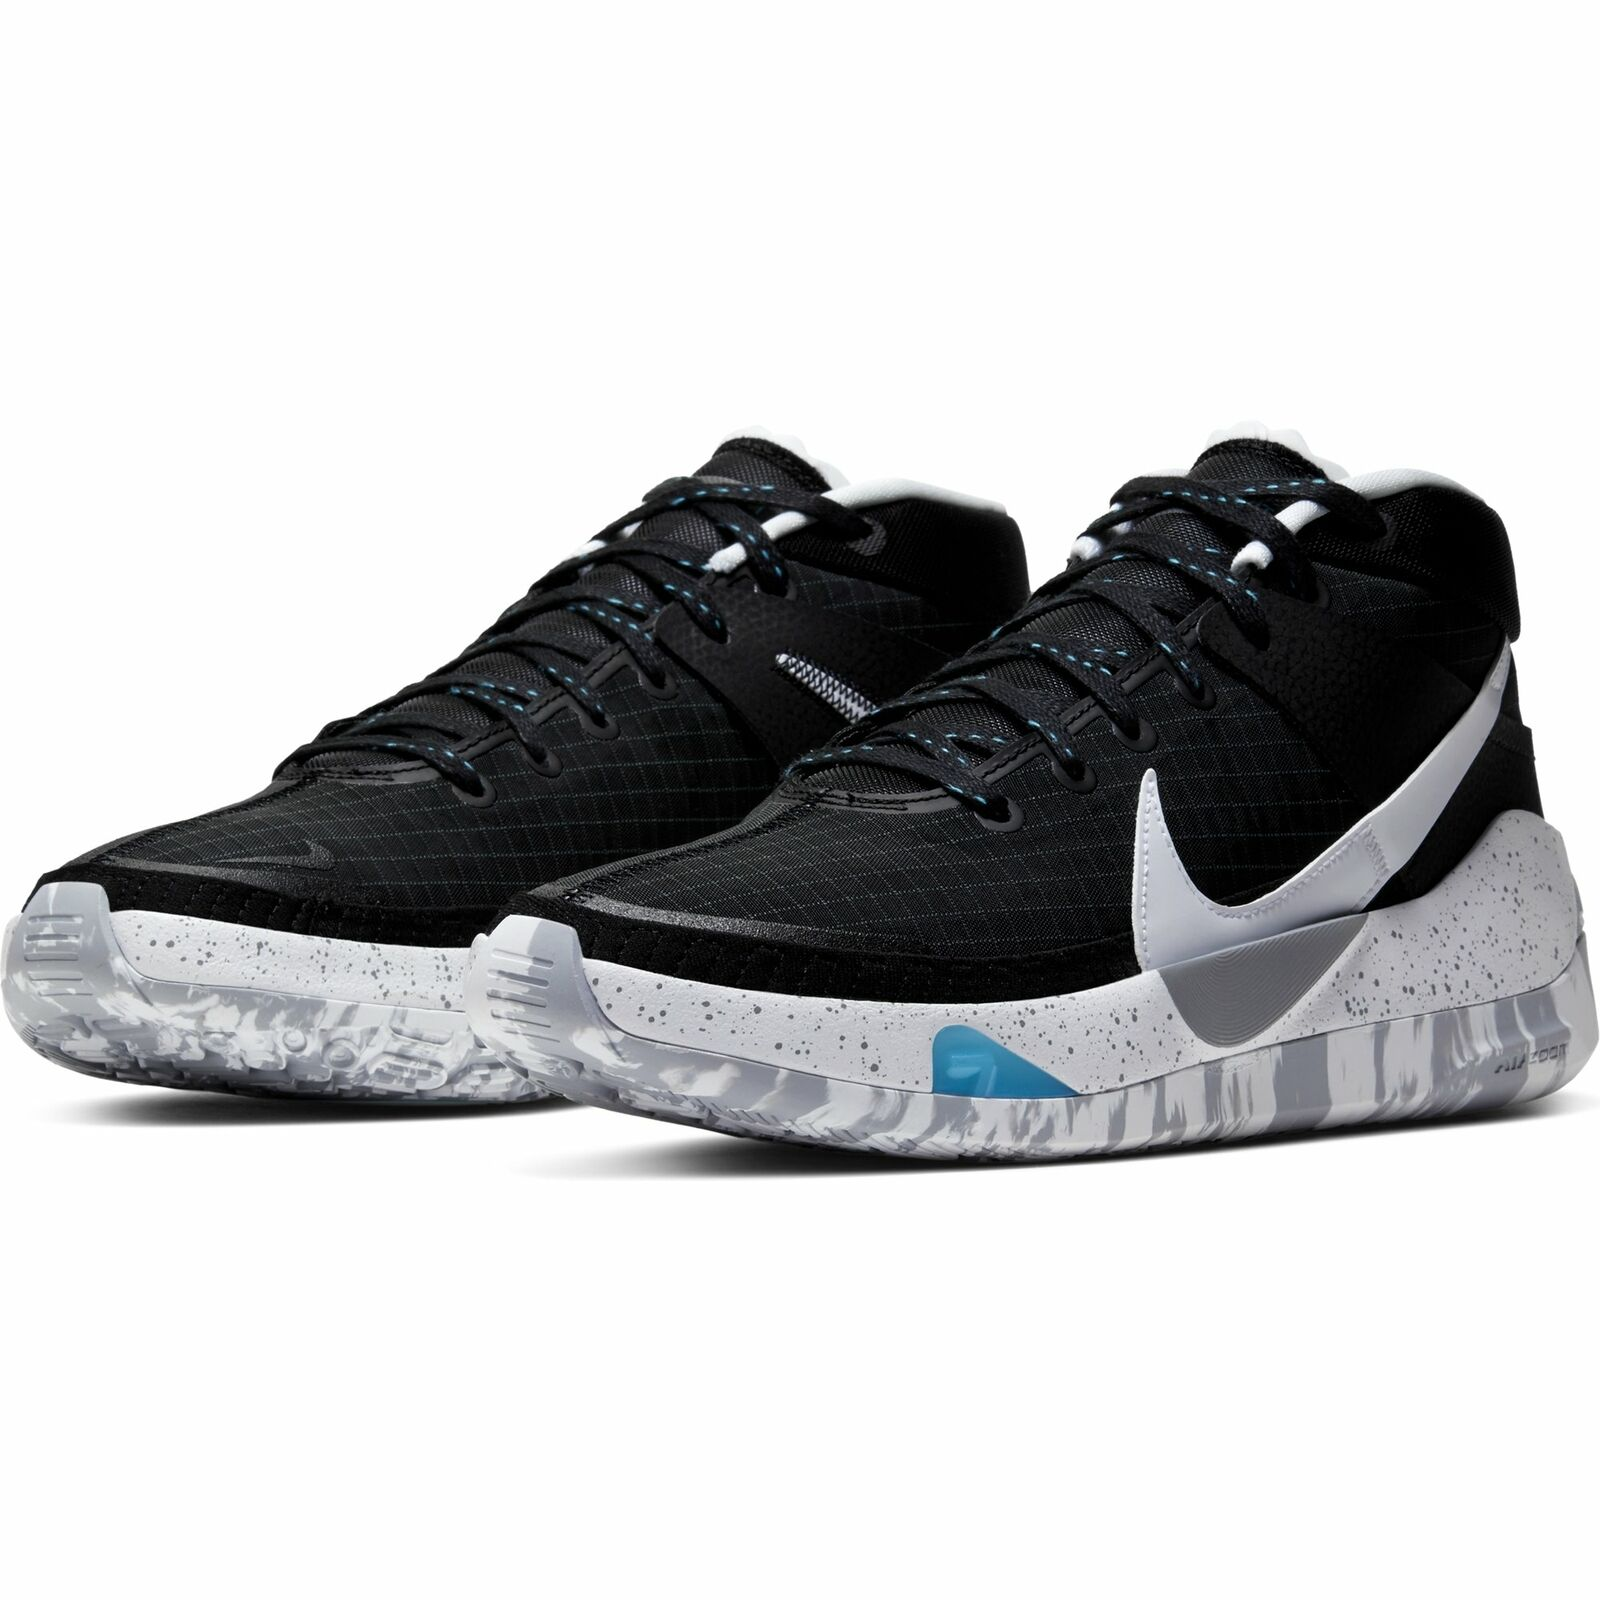 Humildad pistola Centrar  kd 13 basketball shoes Kevin Durant shoes on sale